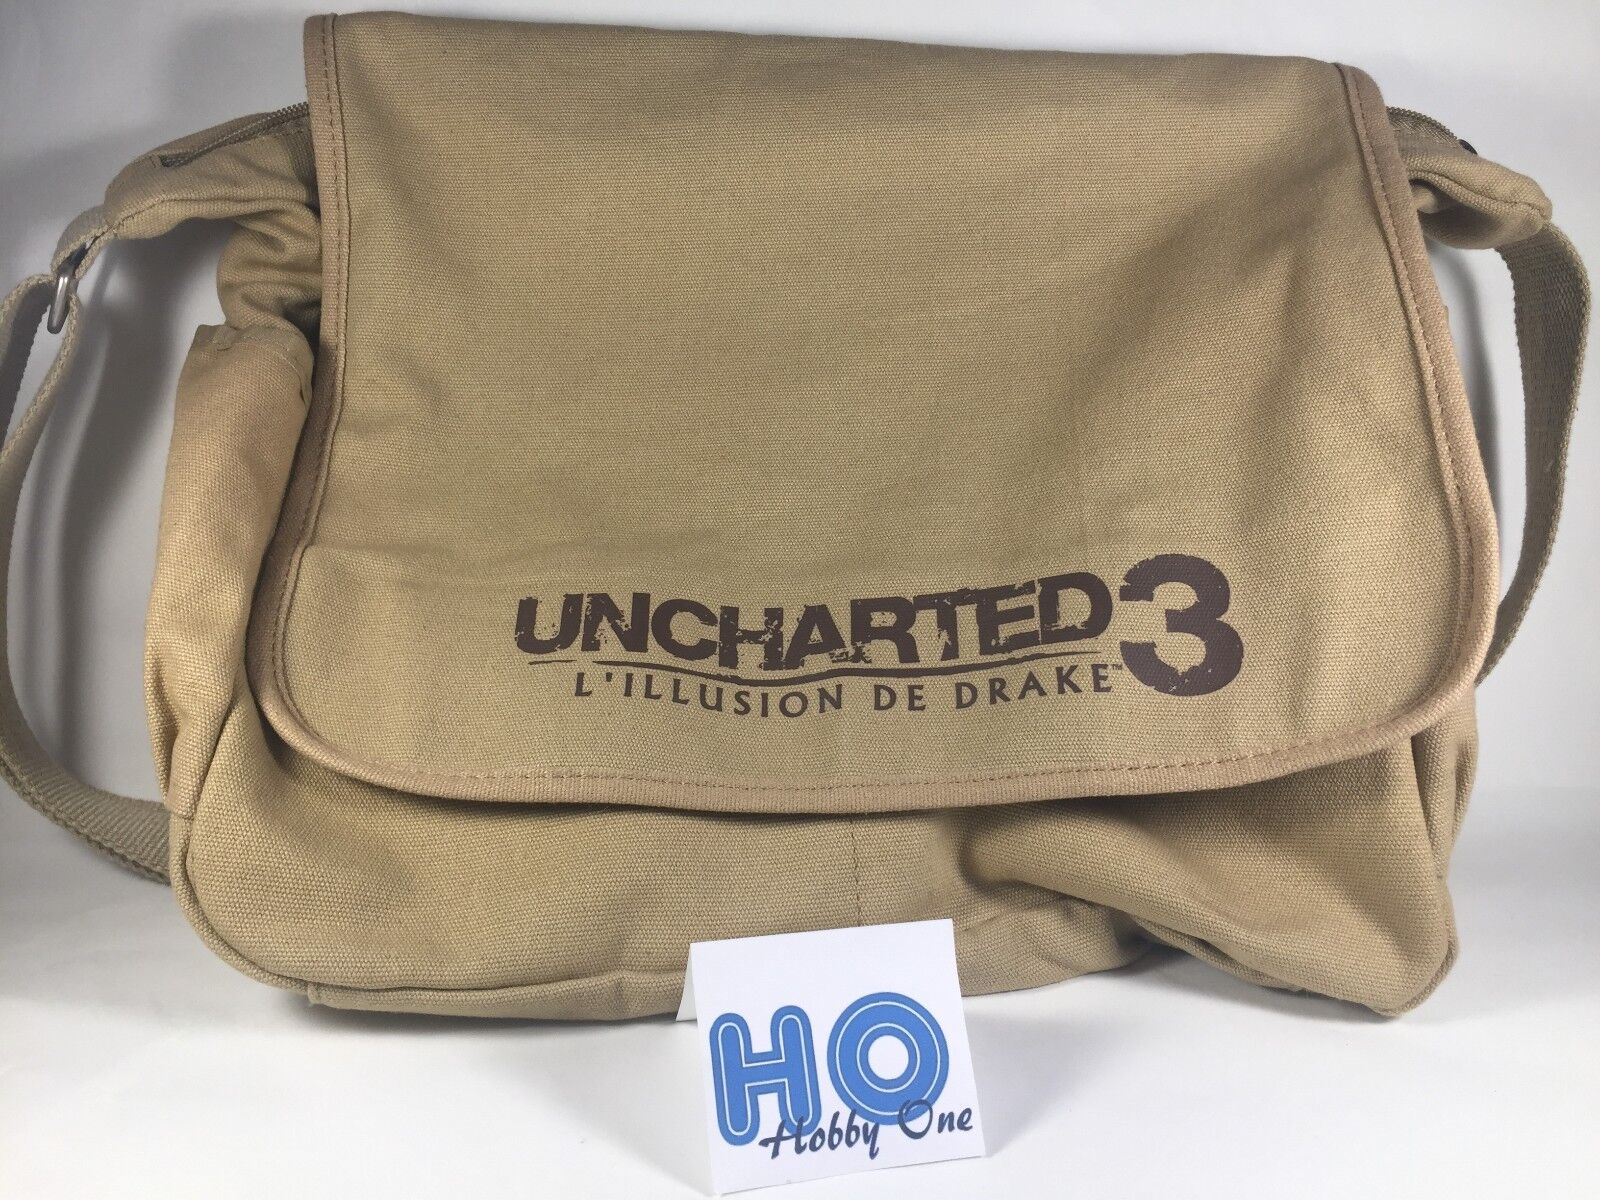 Sac   Besace - Uncharted 3   L'illusion de Drake - PS3 - Comme neuf - RARE